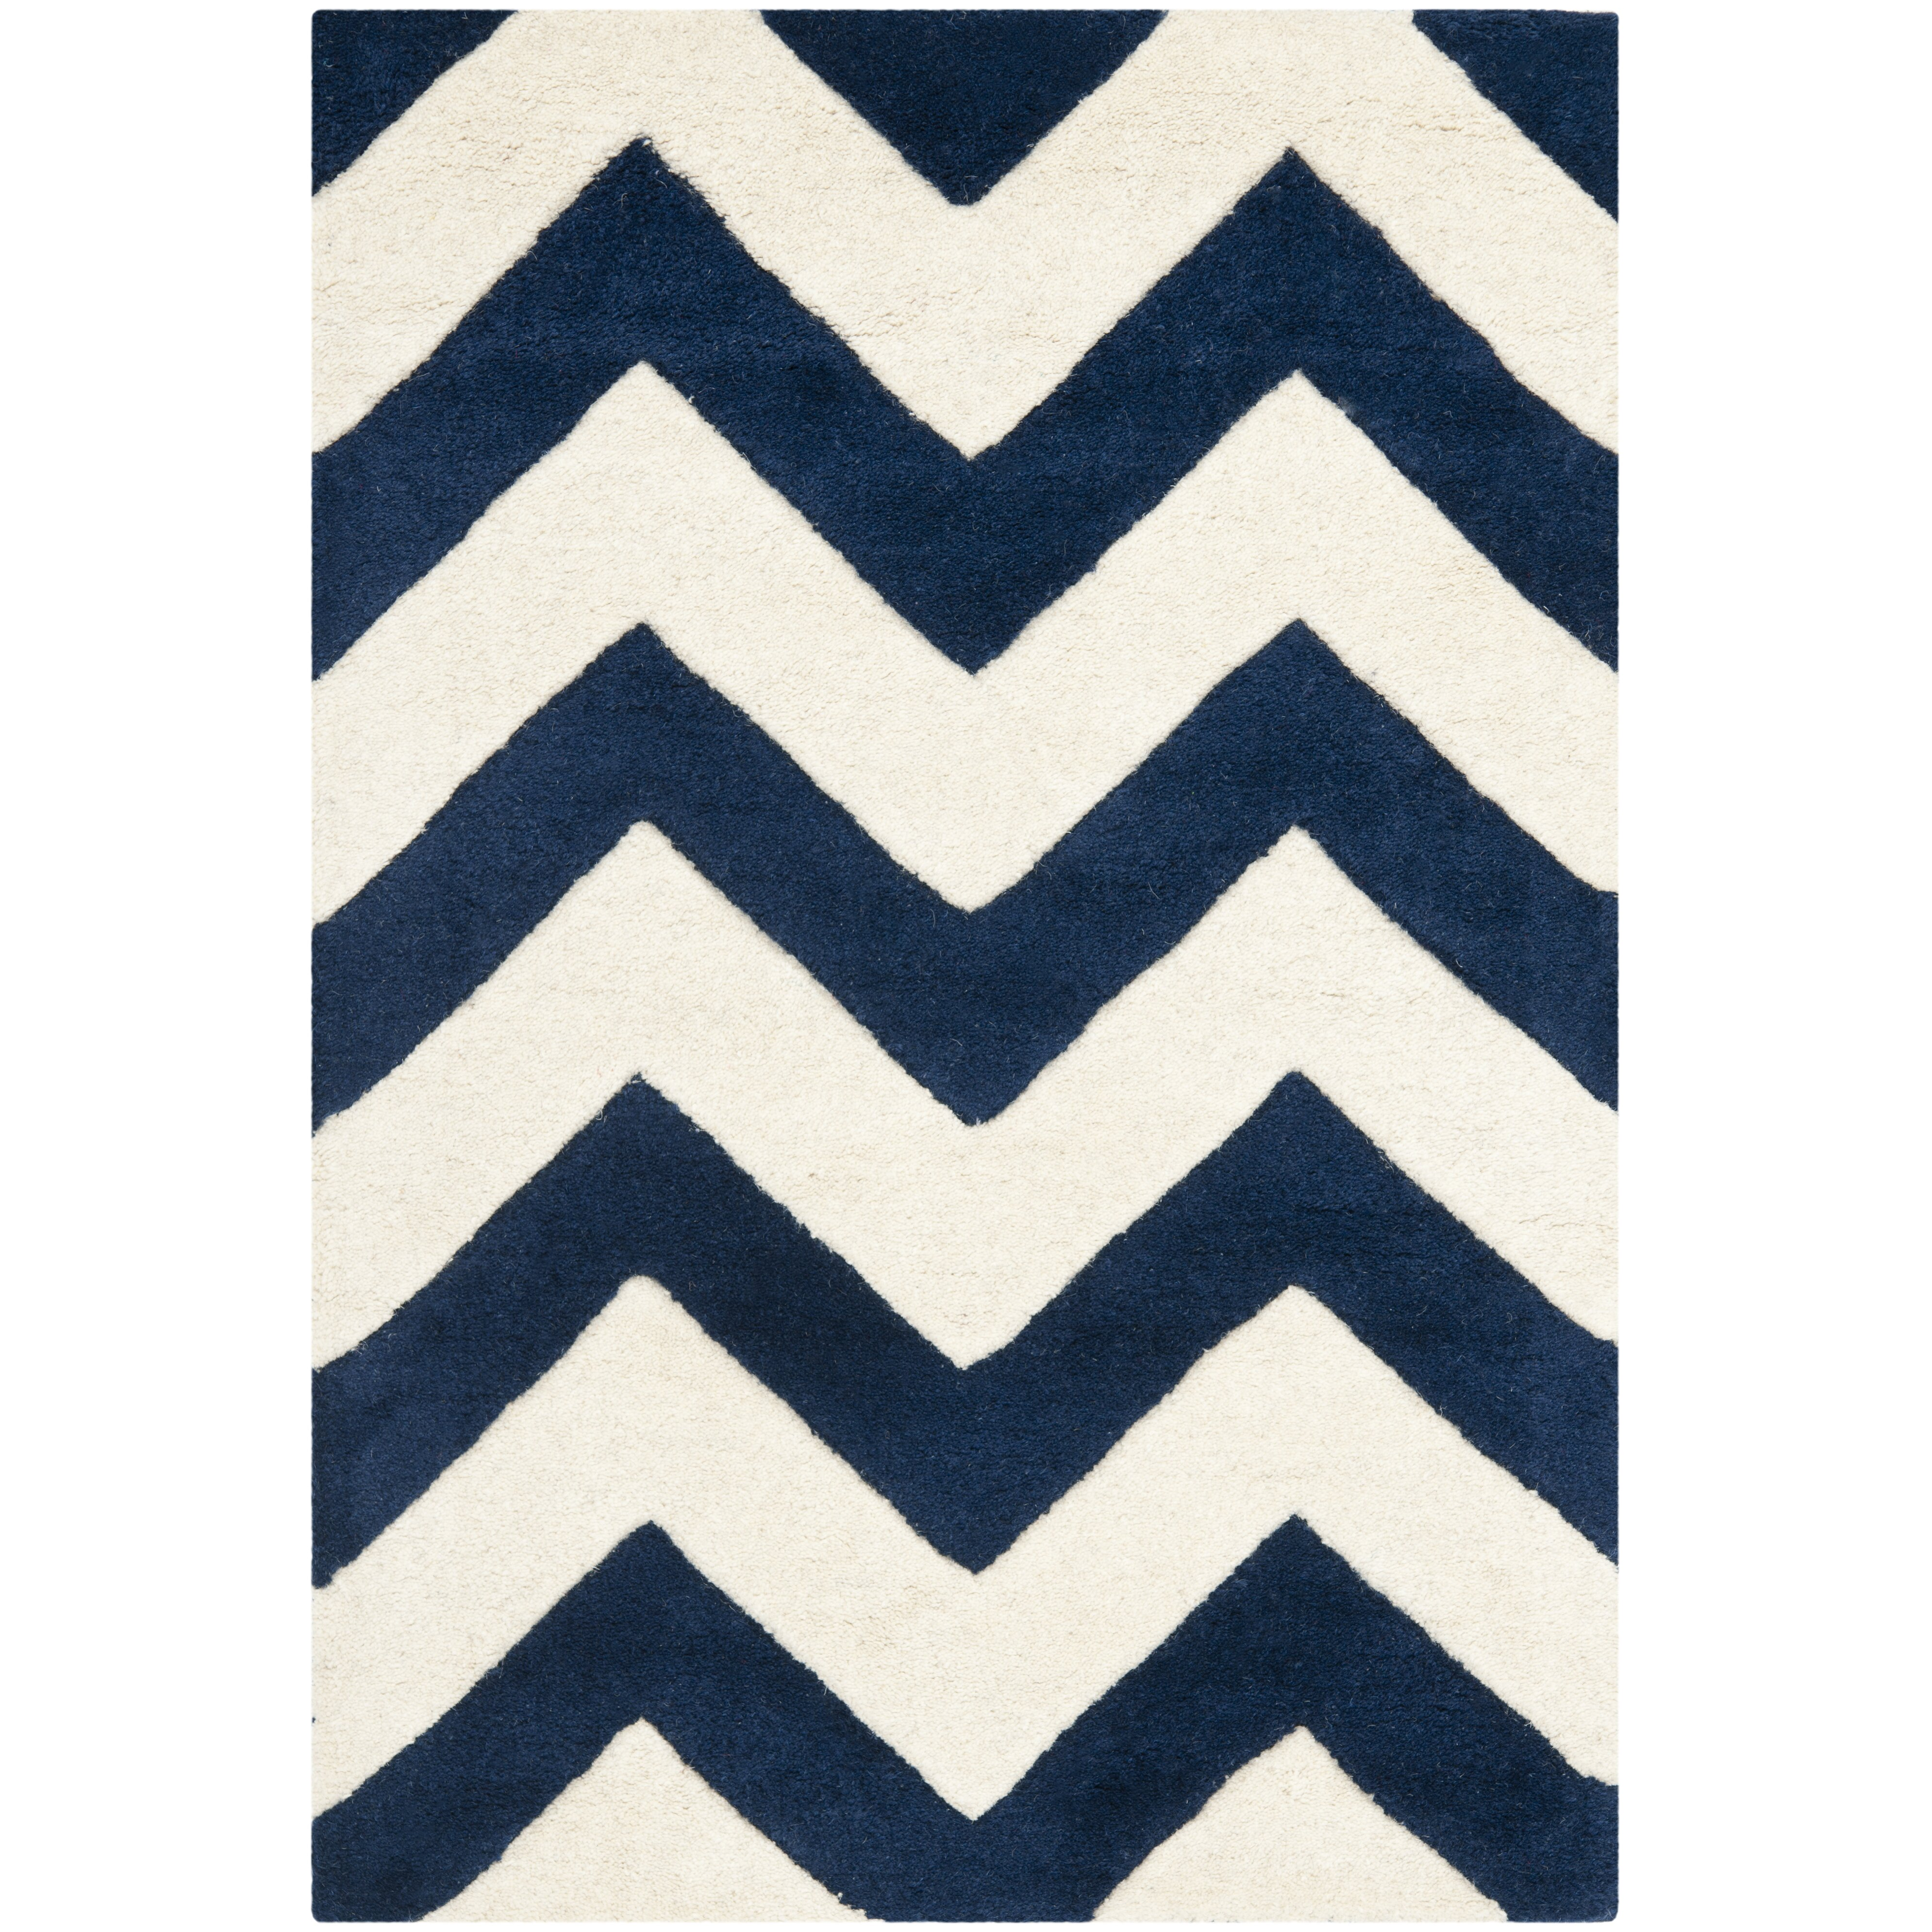 Grey Chevron Living Room Rug Delightful Gray Chevron Area Rug